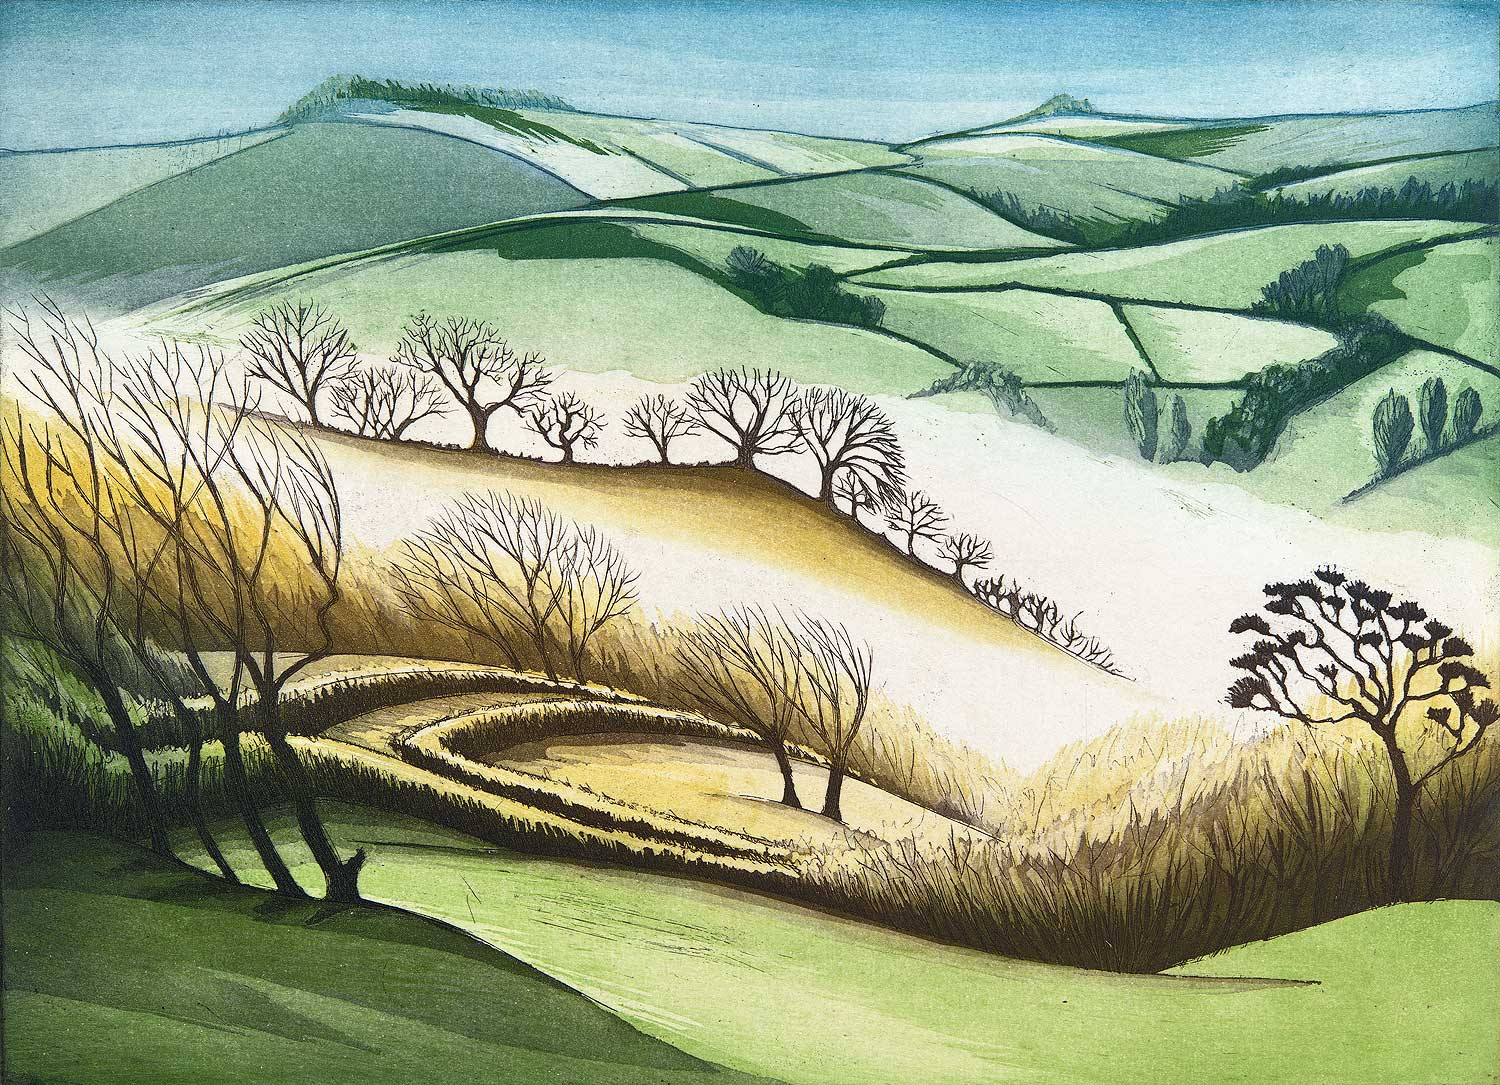 'Mist in the Valley' by Morna Rhys